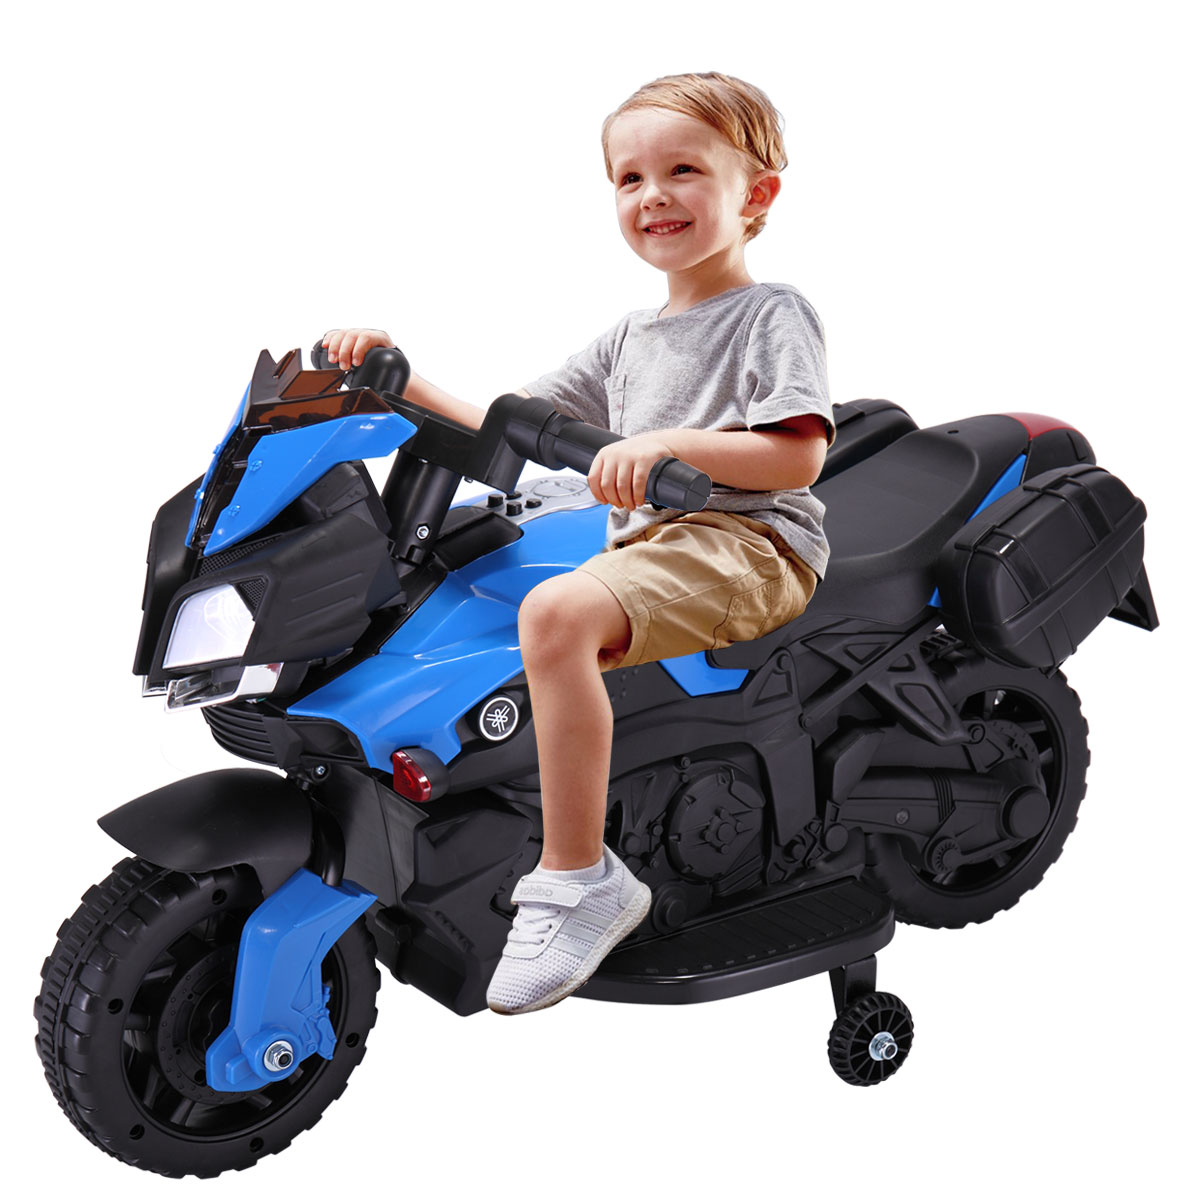 6V Kids Ride On Motorcycle Car Battery Powered 4 Wheel Bicycle Electric Toy by Jaxpety